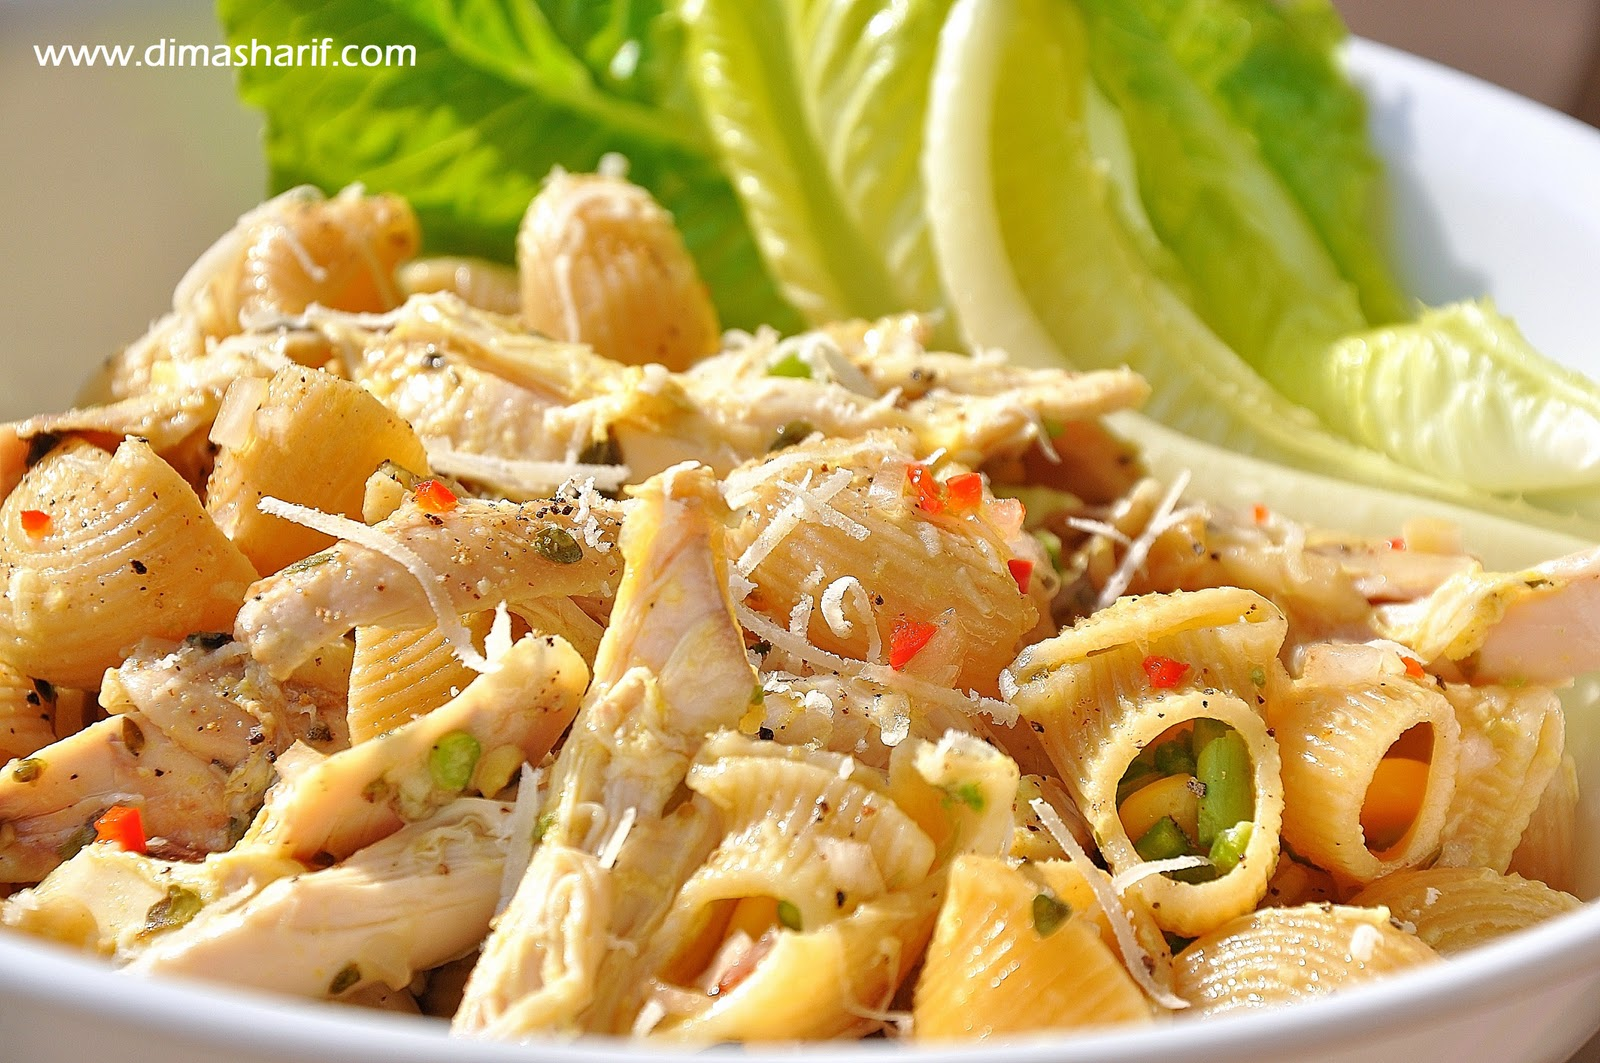 Chicken Pasta Salad You Need 1packet whole wheat large elbow pasta